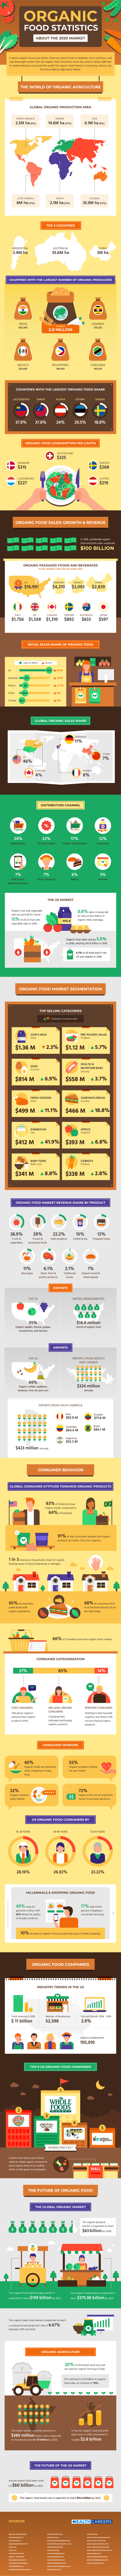 Organic Food Statistics About the 2020 Market Infographic - organic food statistics